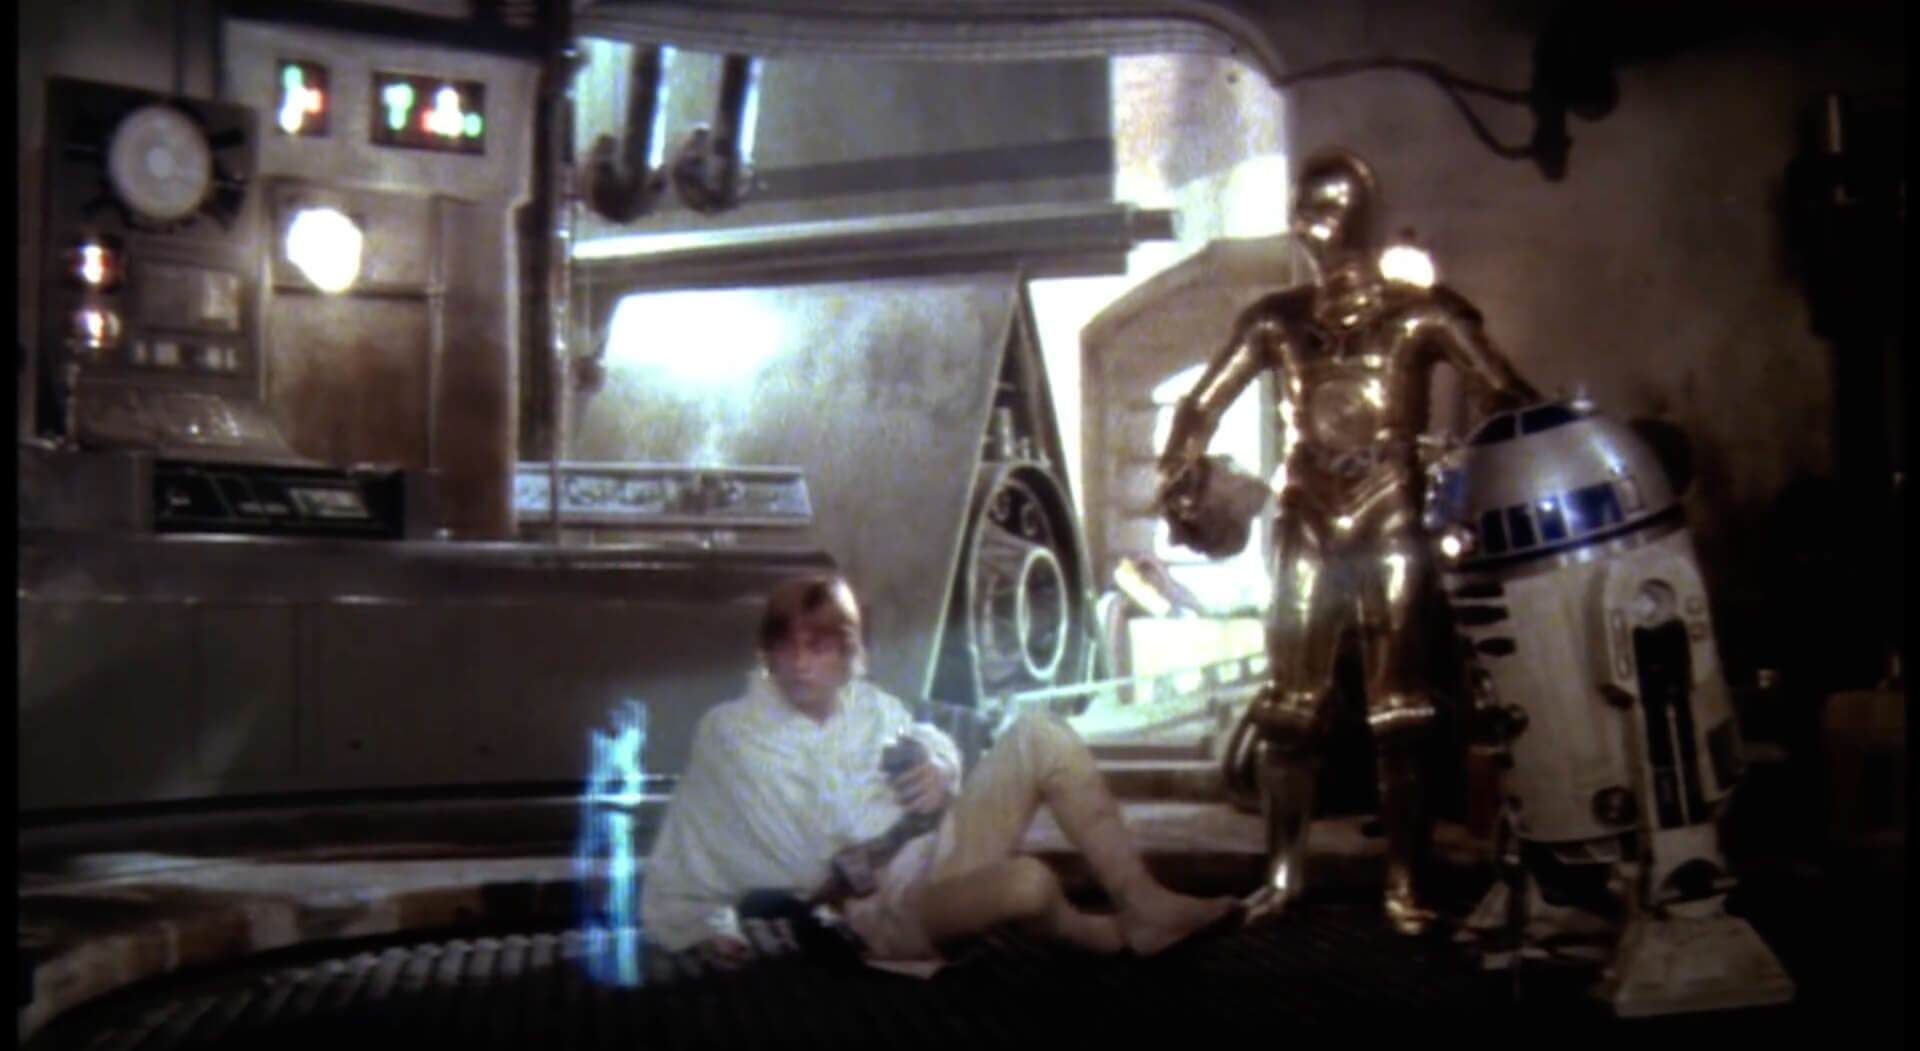 A New Hope - Luke, 3PO and R2D2